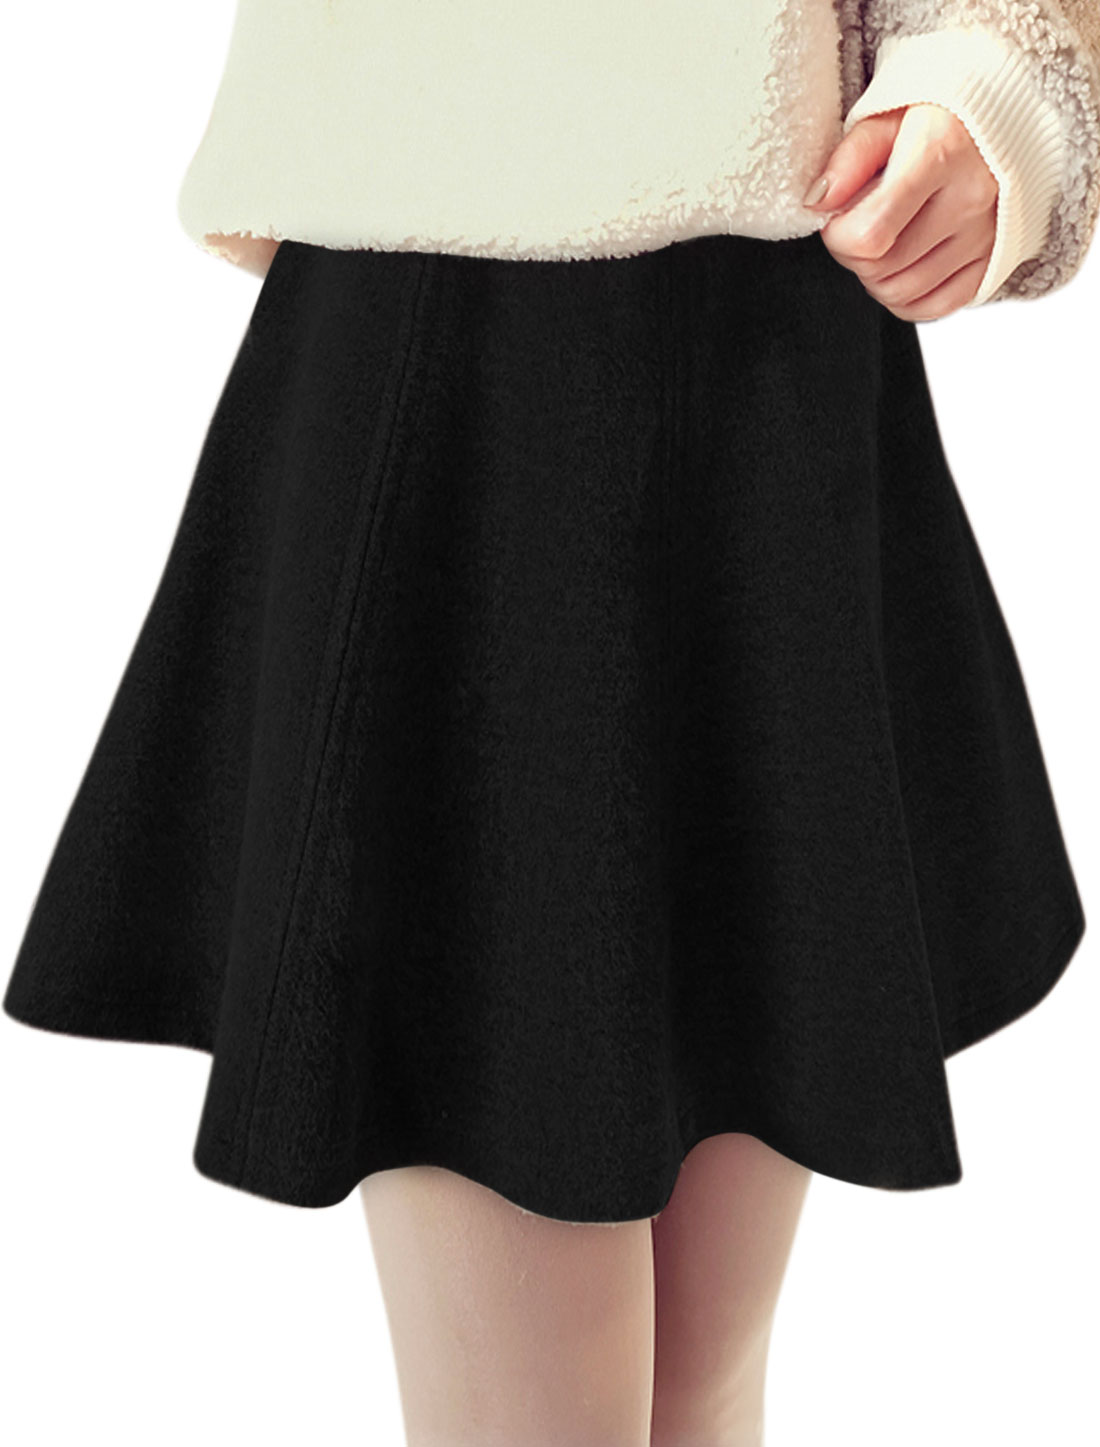 Women High Rise Seamed Worsted Mini A Line Skirt Black XS